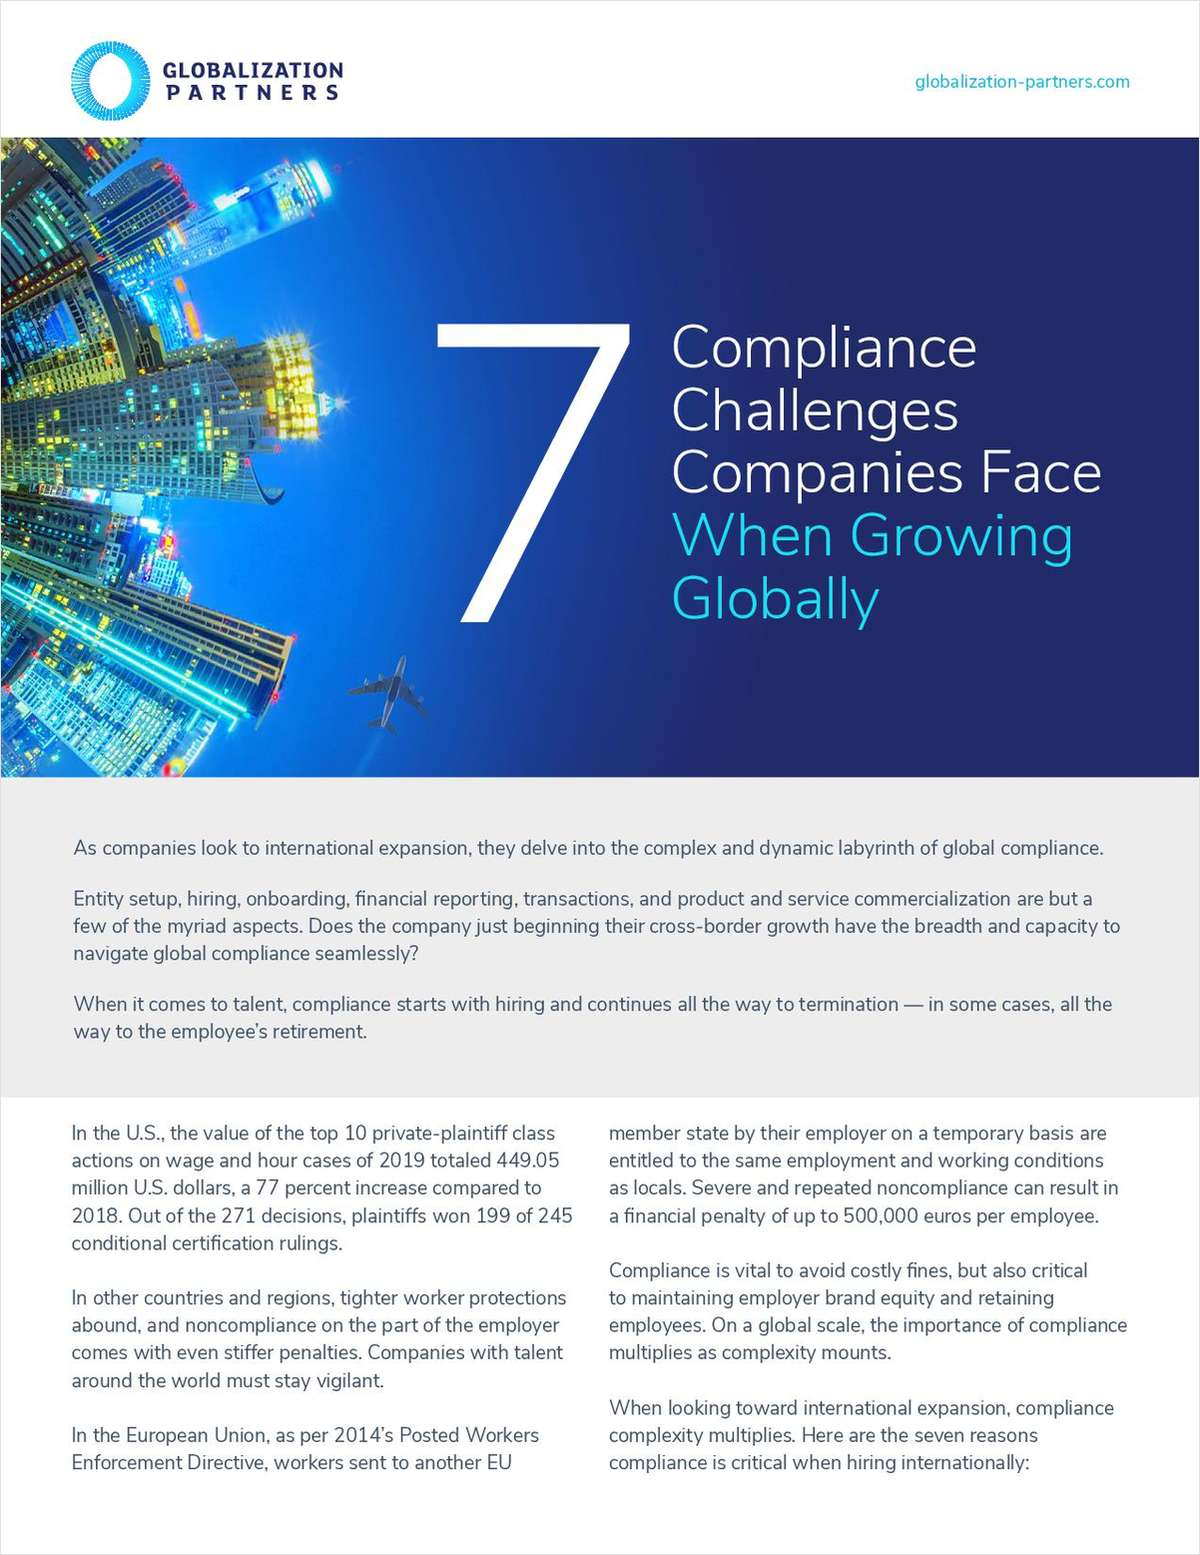 7 Compliance Challenges Companies Face When Growing Globally